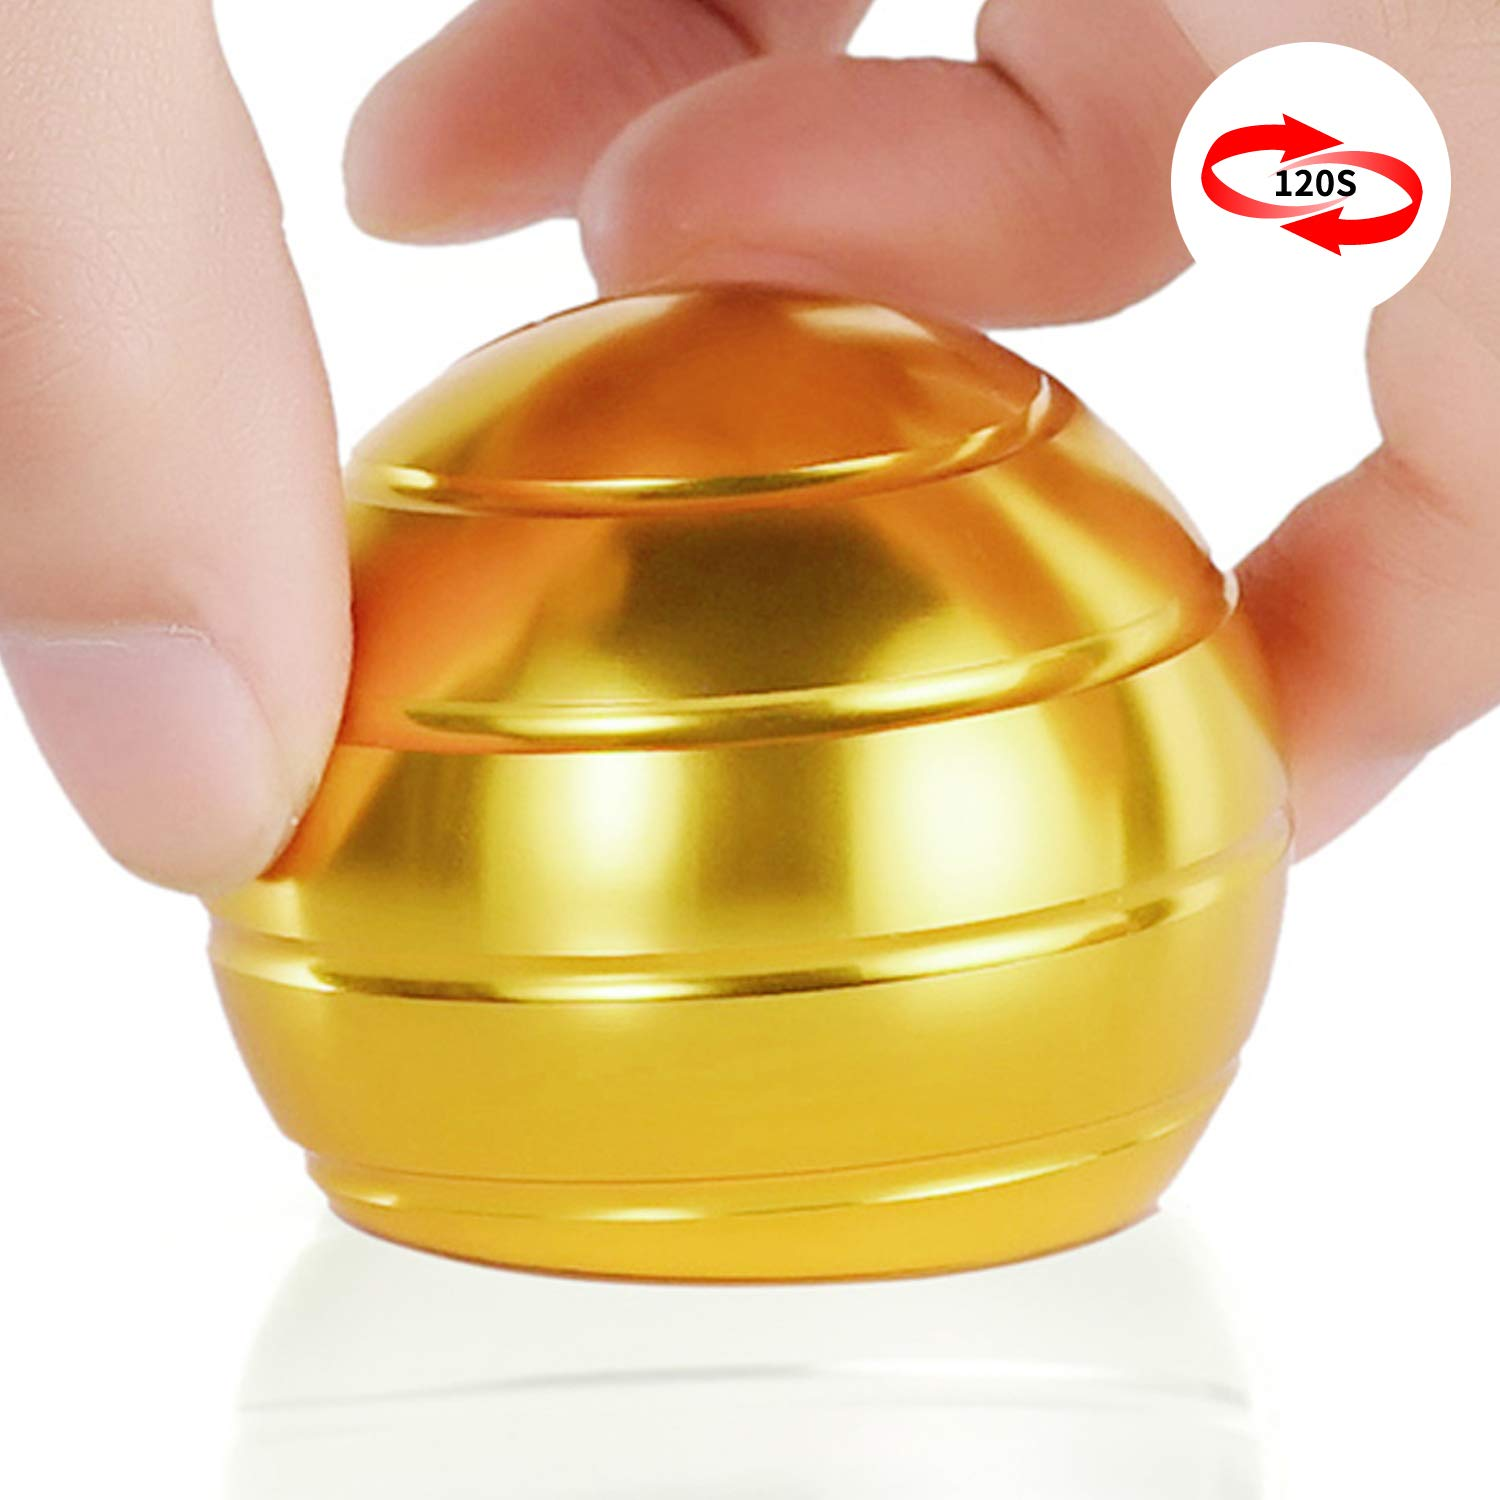 DESDK Office Stress Relief Gadgets Metal Kinetic Spinning Desk Toy New Version Fidget Toy Ball for Adults & Kids Anti Anxiety ADHD Autism Stress Reliever Inspire Creativity (Gold) by DESDK